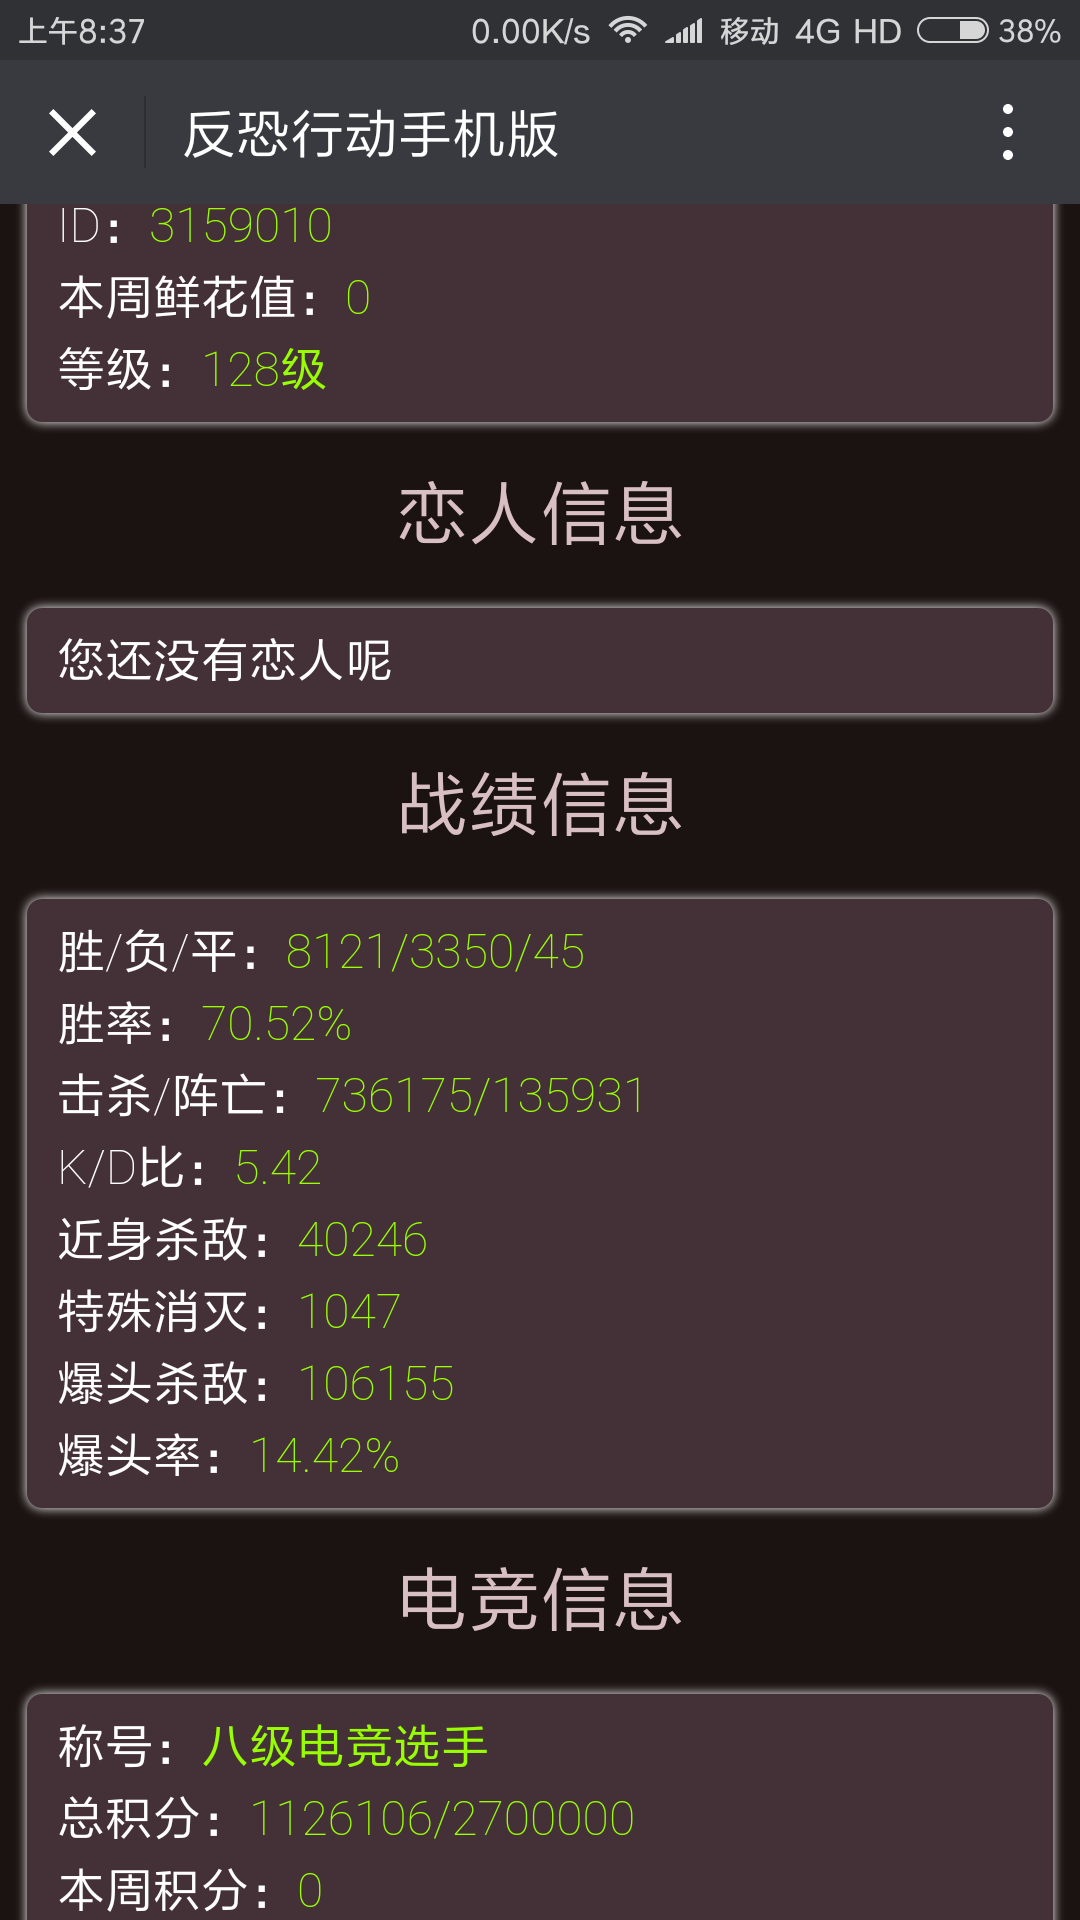 Screenshot_2017-12-28-08-37-17-459_com.tencent.mm.png